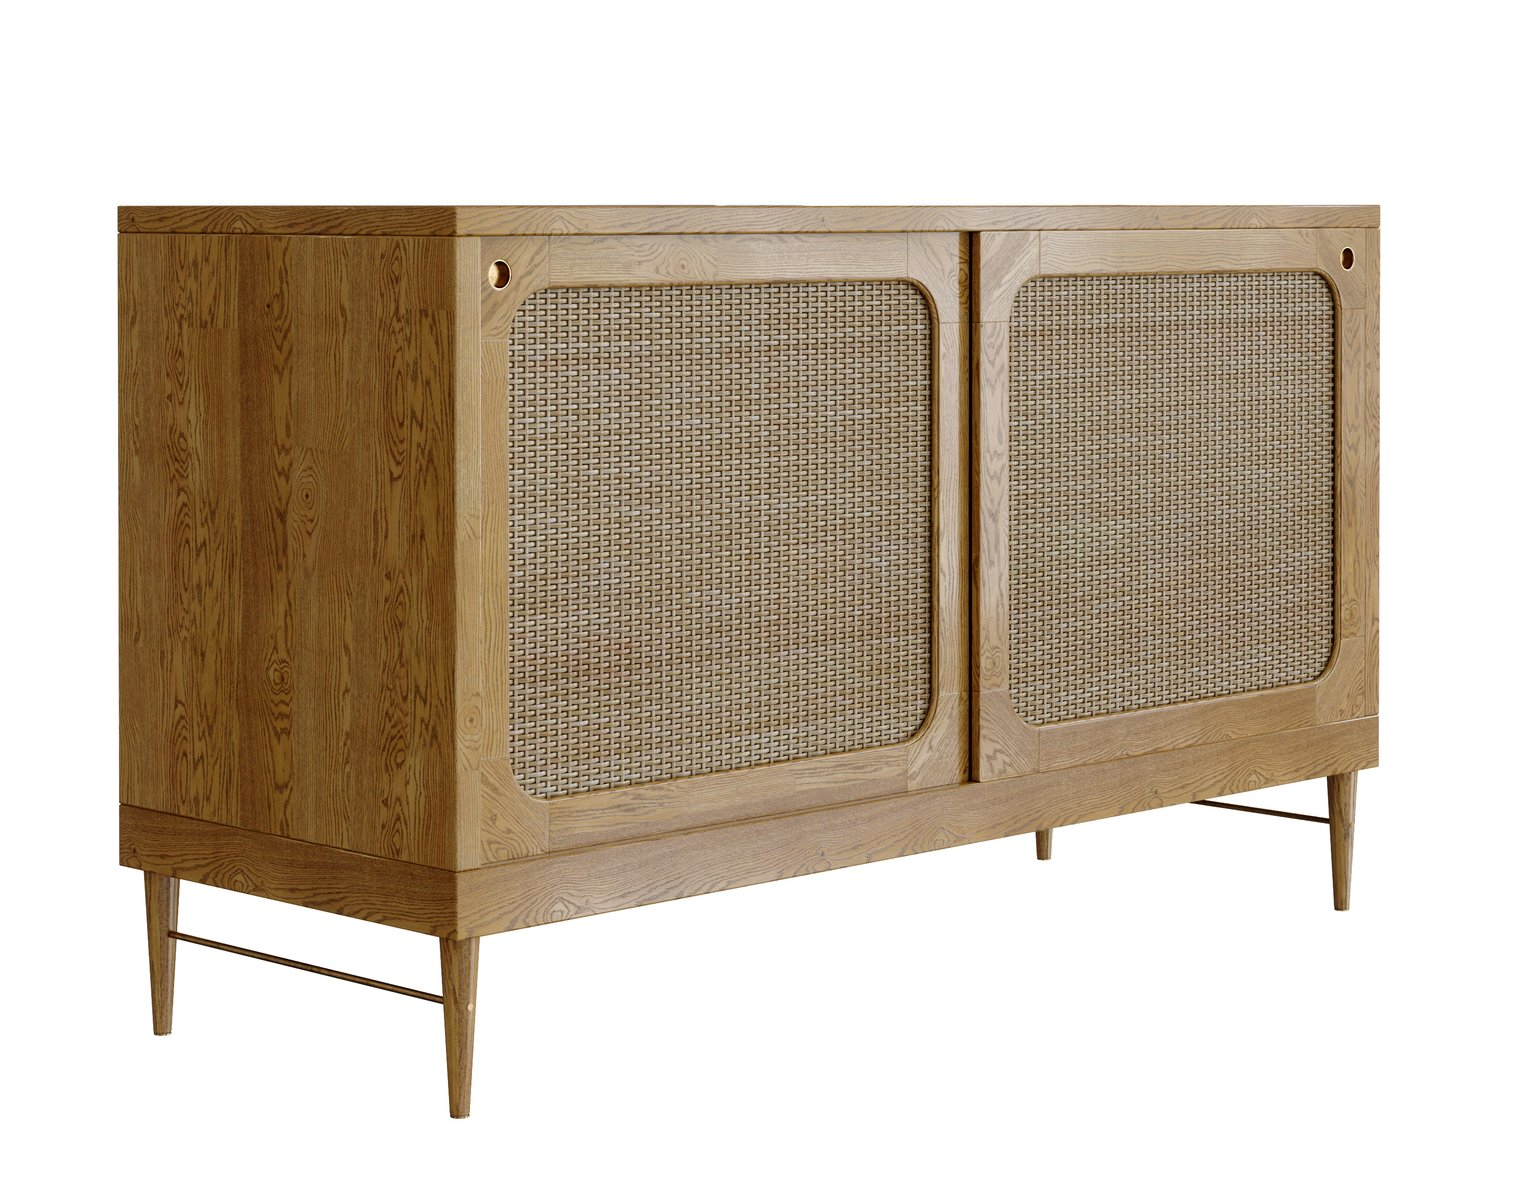 Sideboard In Natural Oak And Rattan By Lind Almond For